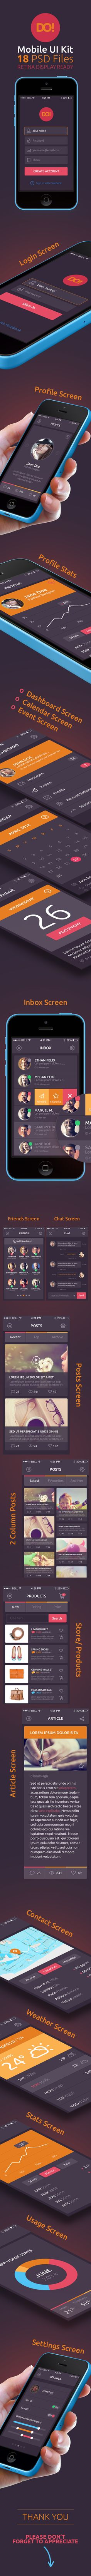 - Mobile UI Kit by pixelstrawberry DO! Mobile App UI Kit interface is 19 PSD high resolution, retina display ready, fully shape/vector layered photoshop files, easy Ui Kit, Web Design, Graphic Design, Mobile Ui Design, Mobile App Ui, Layout, Interface Design, Flat, Gaming Tips